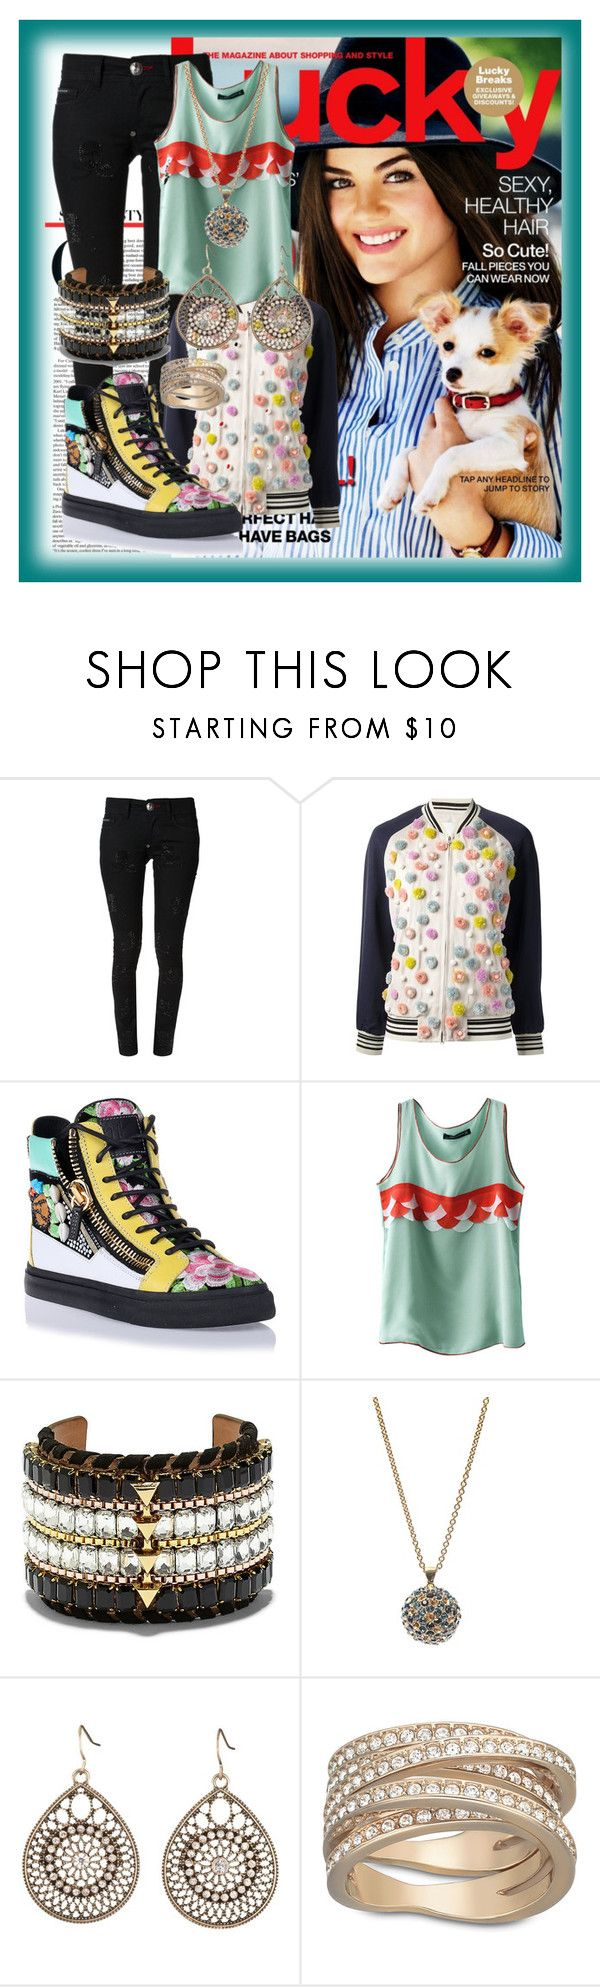 """""""Sneakers Outfit"""" by deedee-pekarik ❤ liked on Polyvore featuring Philipp Plein, 3.1 Phillip Lim, Giuseppe Zanotti, Vince Camuto, Alexander McQueen and Swarovski"""